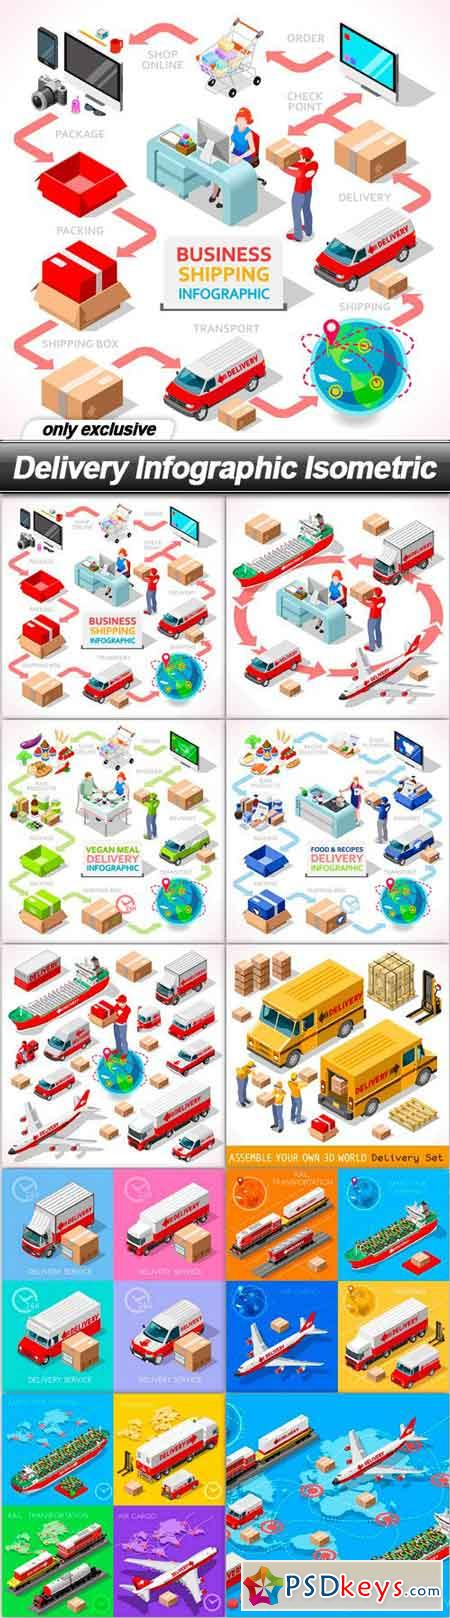 Delivery Infographic Isometric - 10 EPS